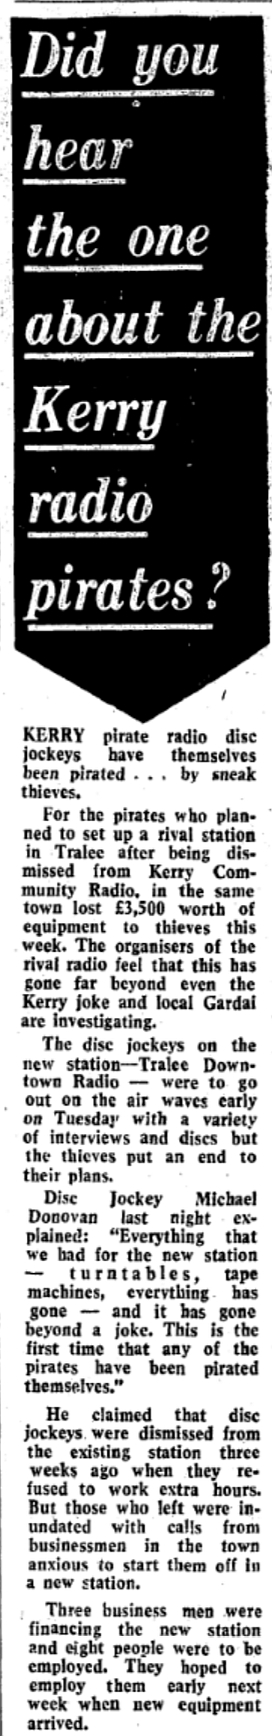 Did you hear the one about the Kerry pirates? was a headline in The Irish Independent dated February 28th 1979